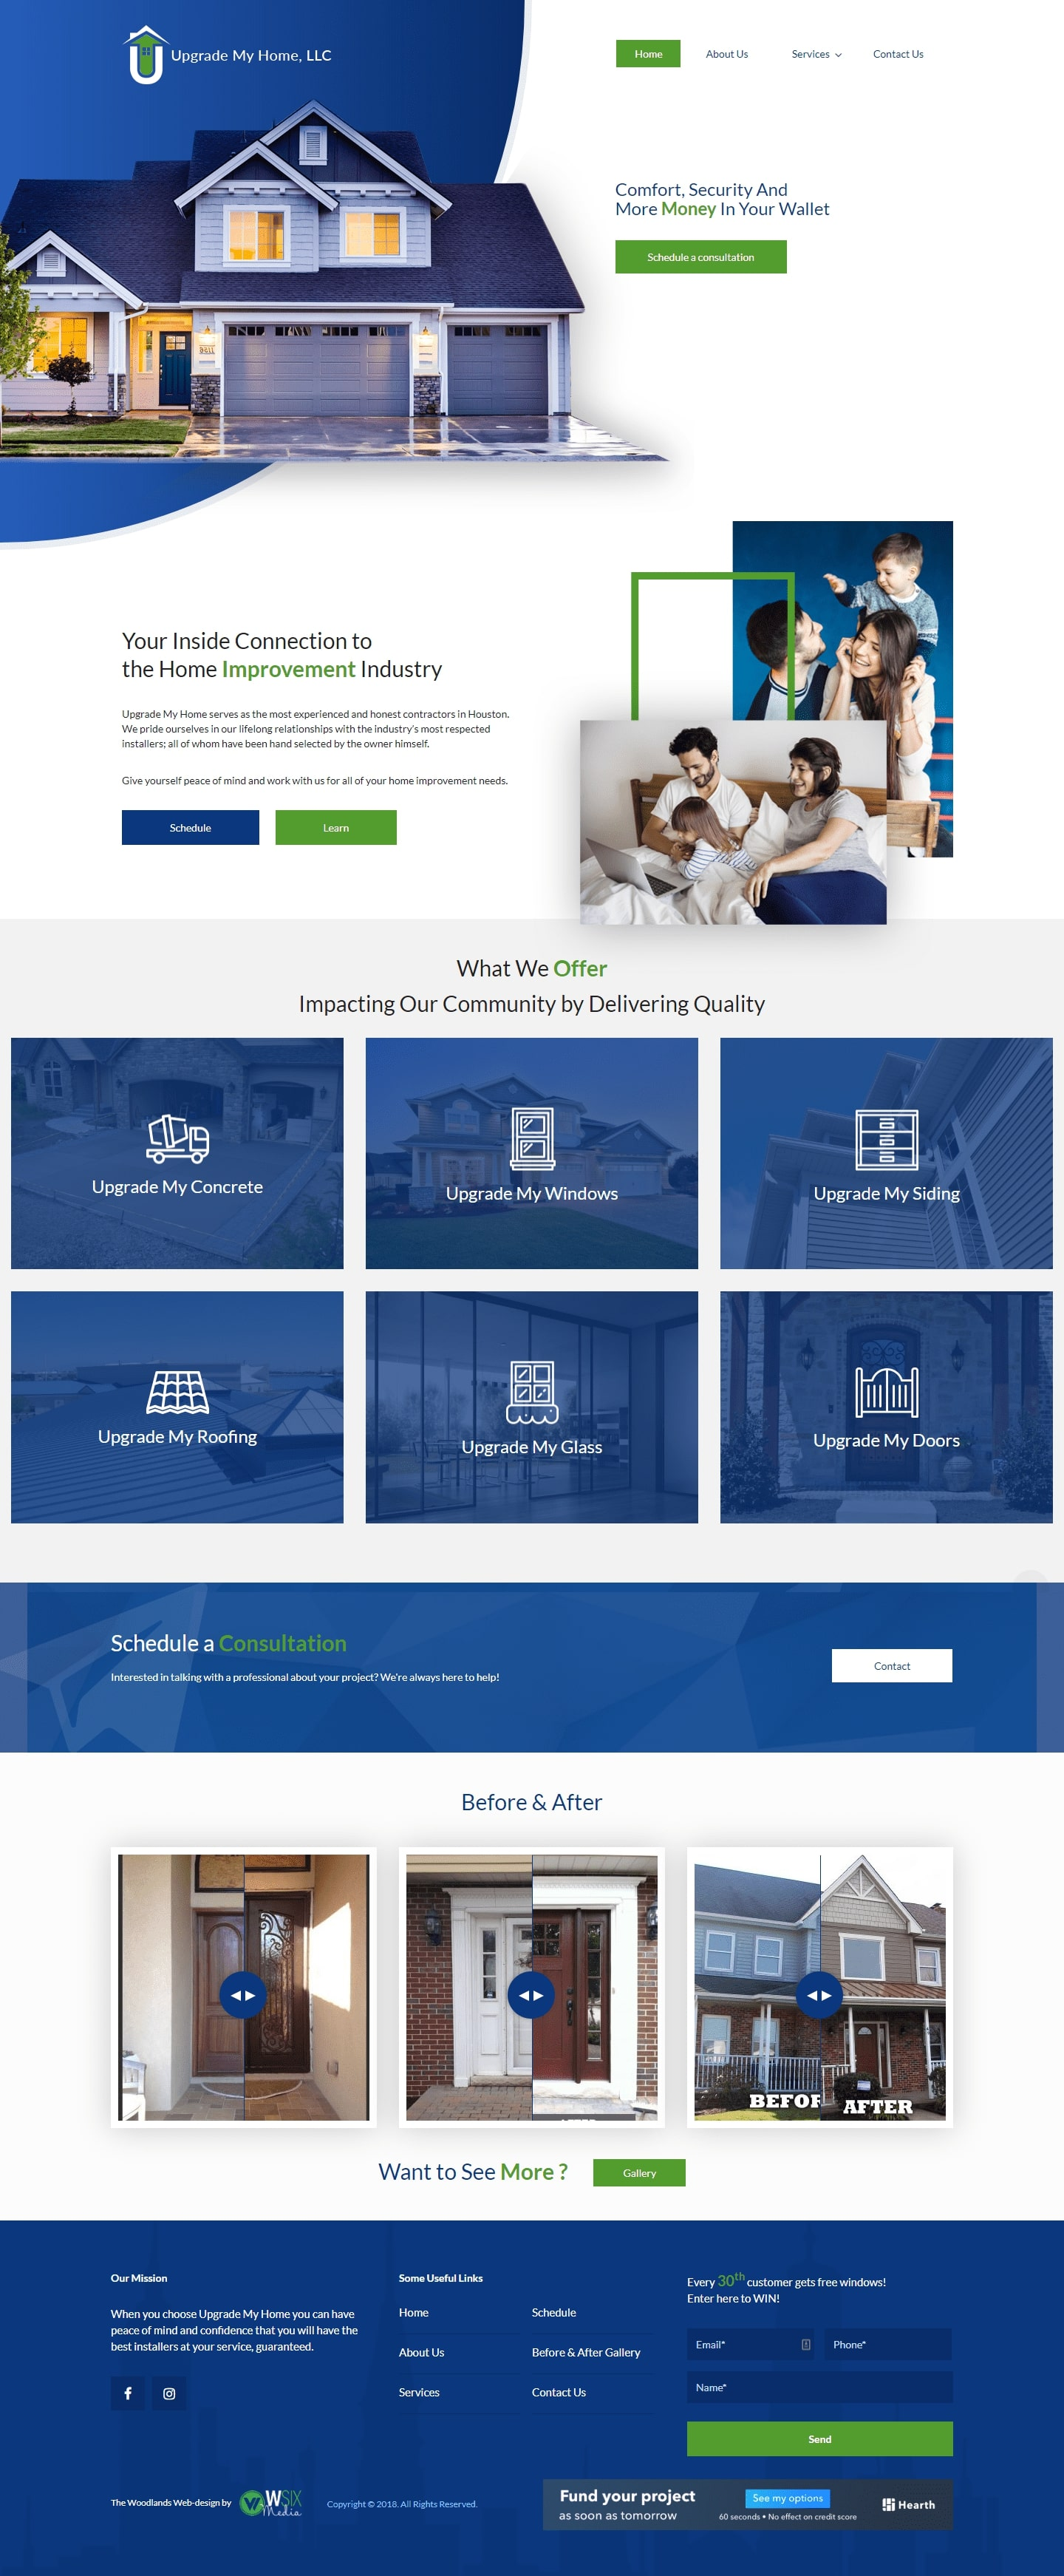 Upgrade My Home The Woodlands Web Design Page